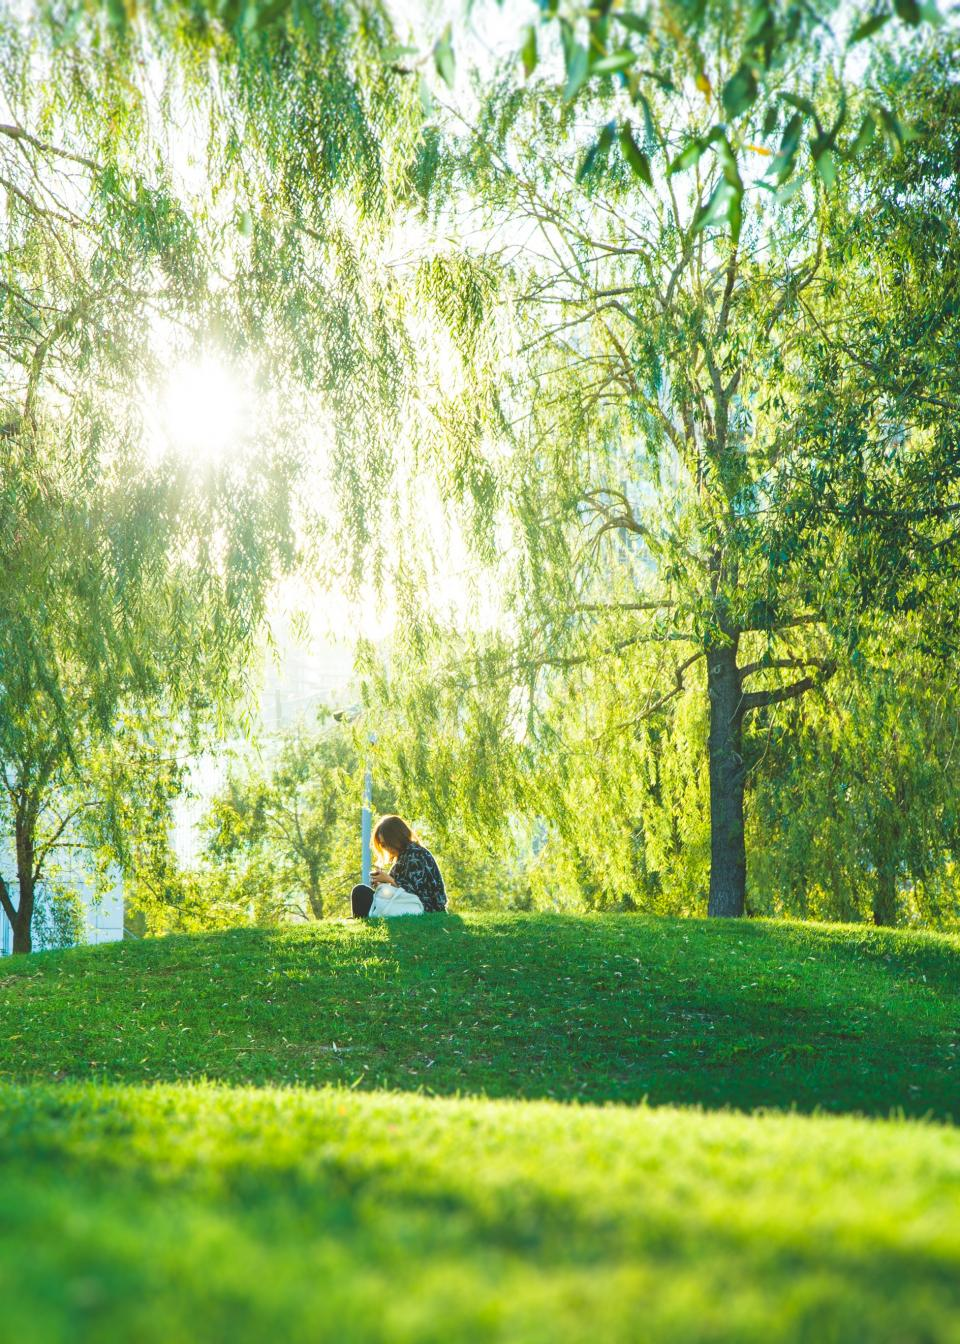 green, grass, nature, highland, lawn, outdoor, people, sitting, alone, picnic, tree, plant, landscape